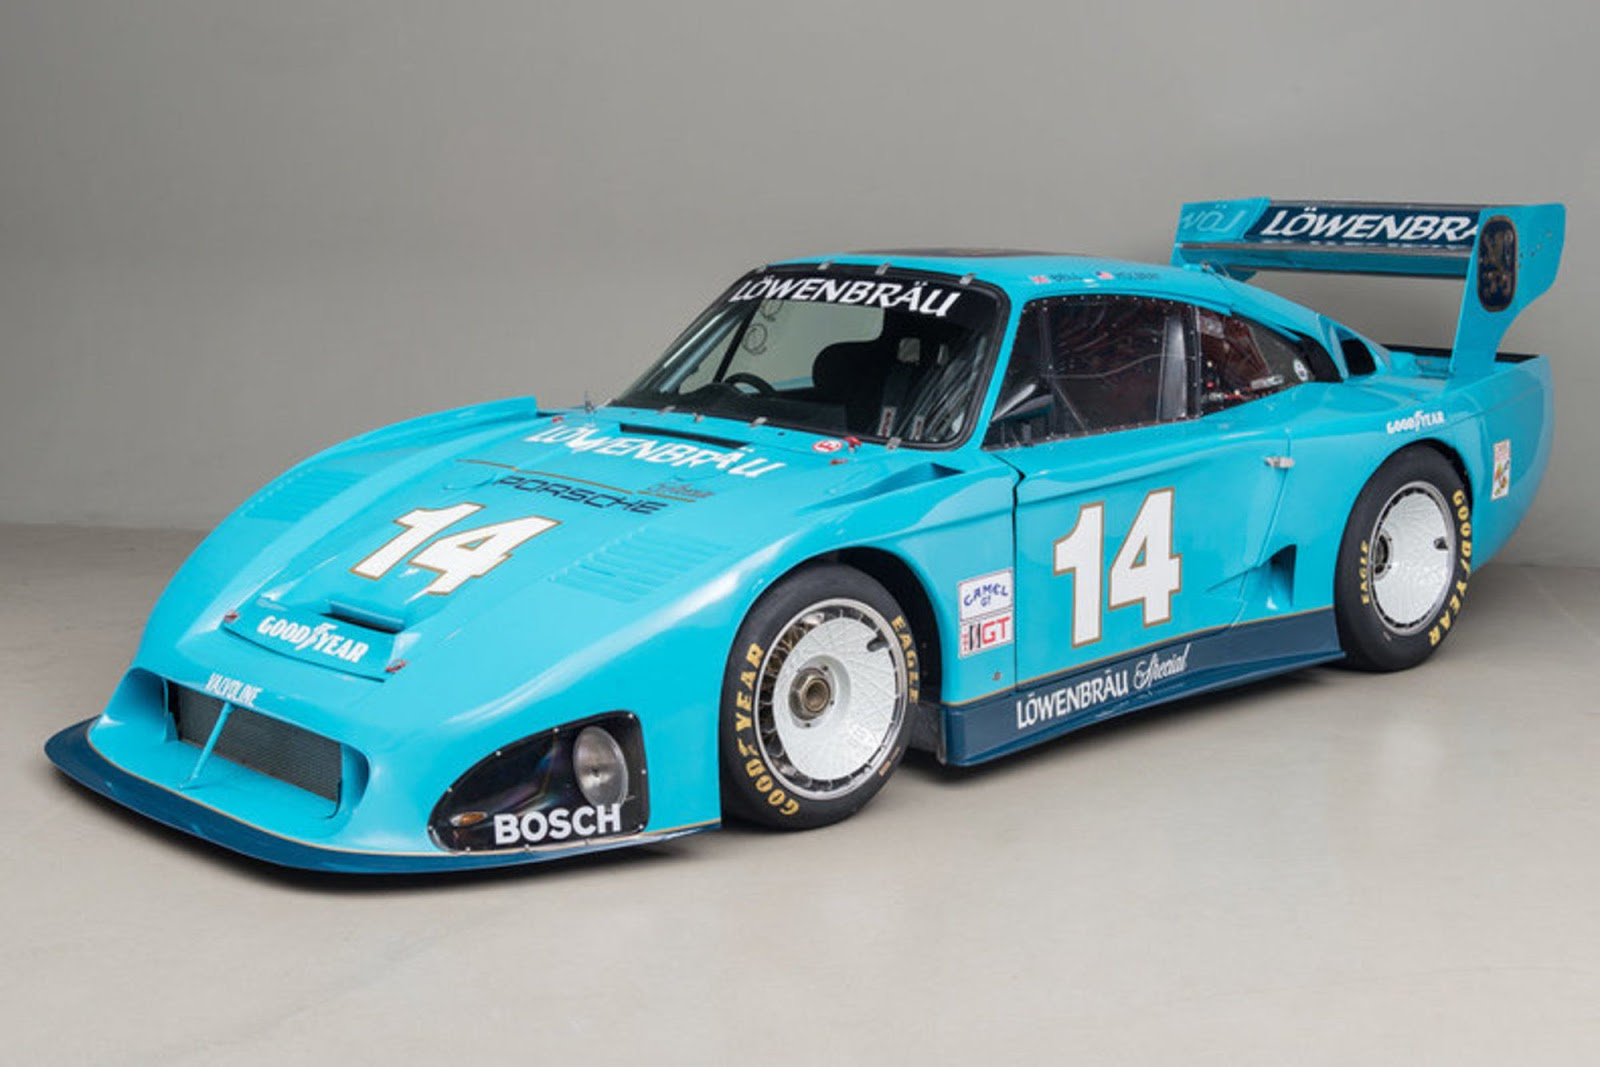 Porsche Track Car For Sale >> 1981 Porsche 935 K4 Is $2.85 Million Worth Of Racing History | Carscoops